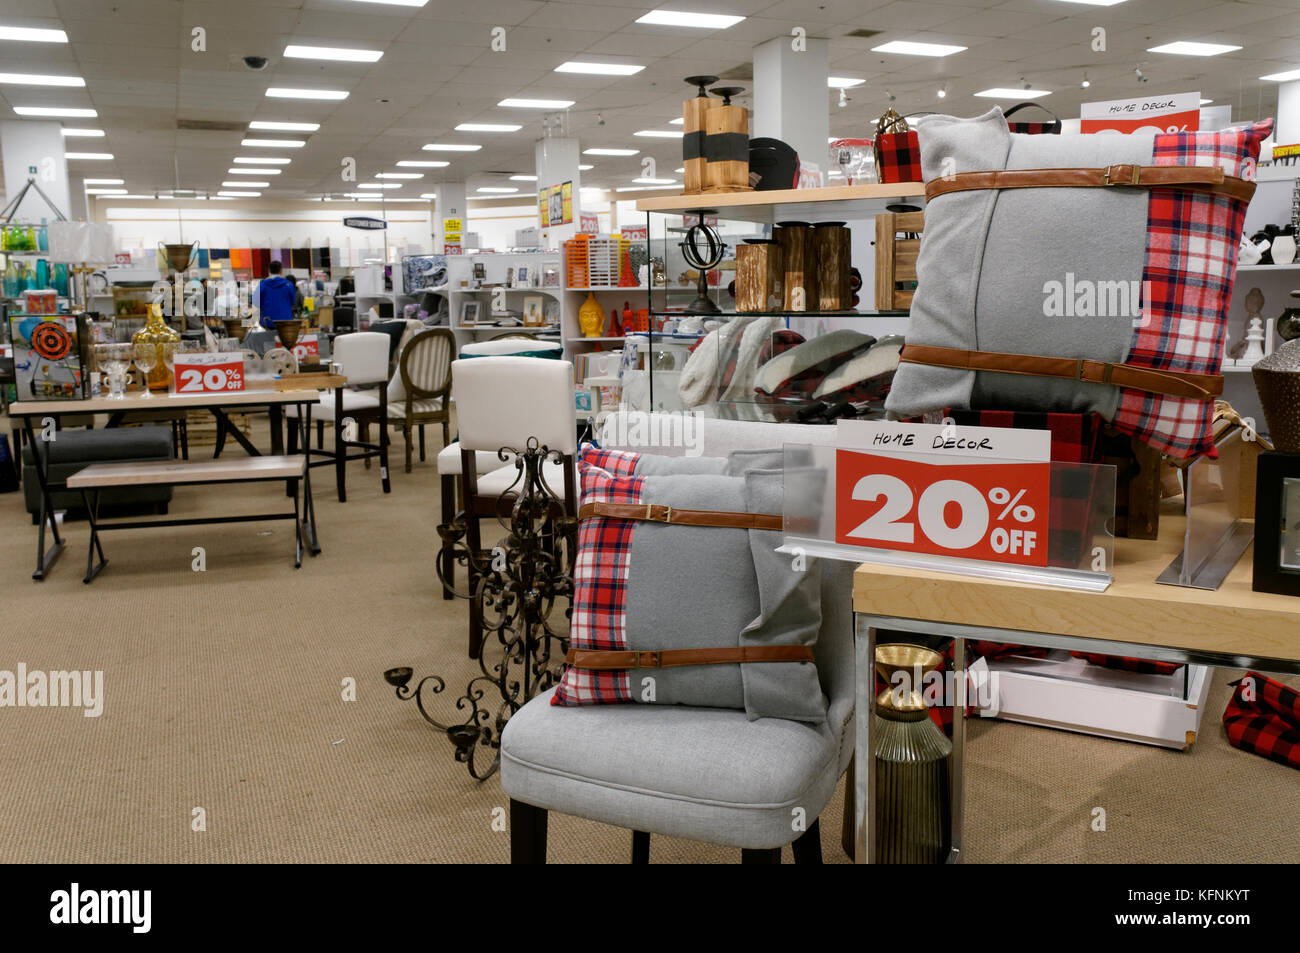 Home Decor Items On Sale During Closing Out Sale 2017 Inside Sears Canada  Department Store In Capilano Mall, North Vancouver, BC, Canada